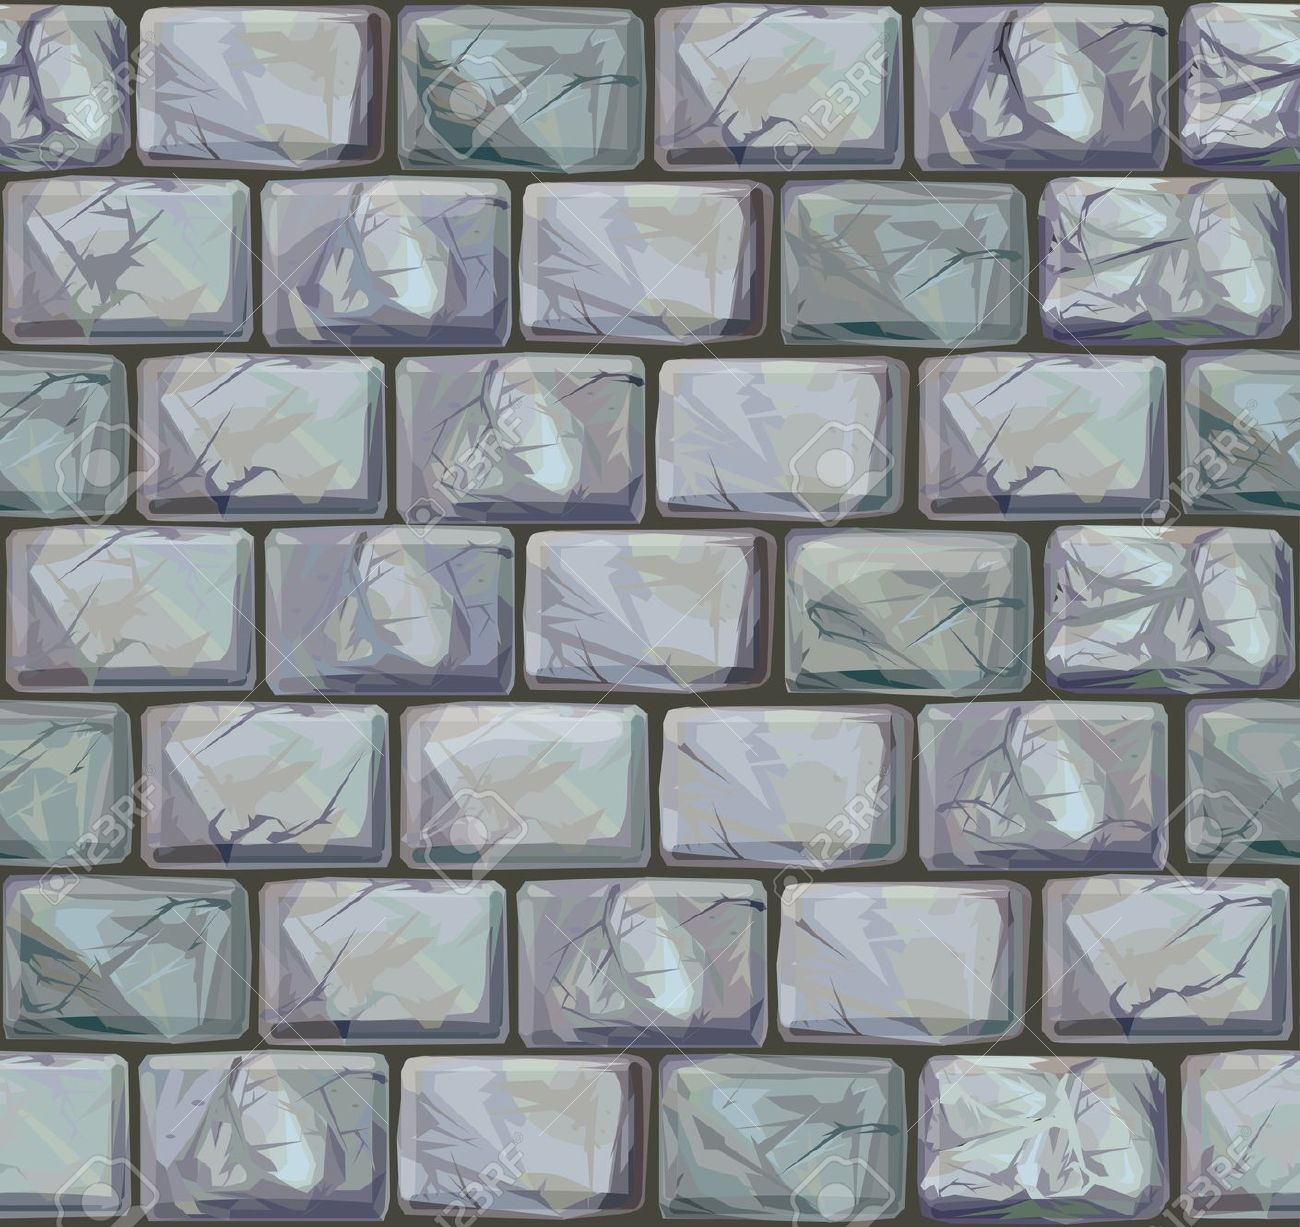 Grey stone clipart 20 free Cliparts  Download images on Clipground 2019